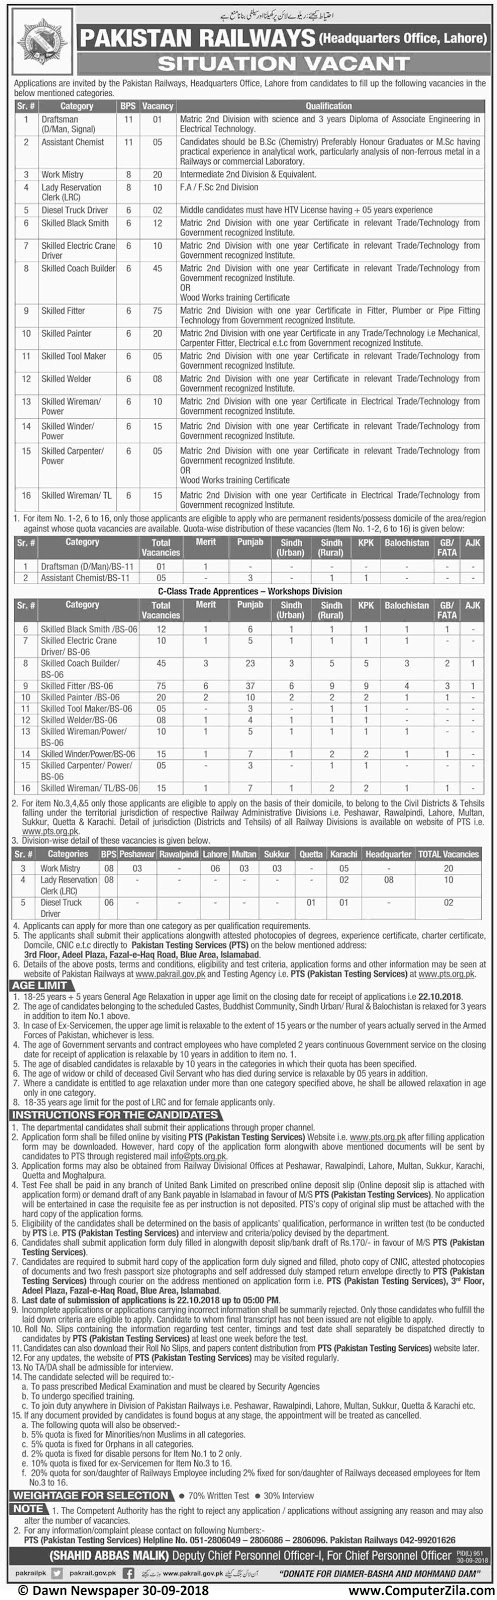 Situations Vacant at Pakistan Railways